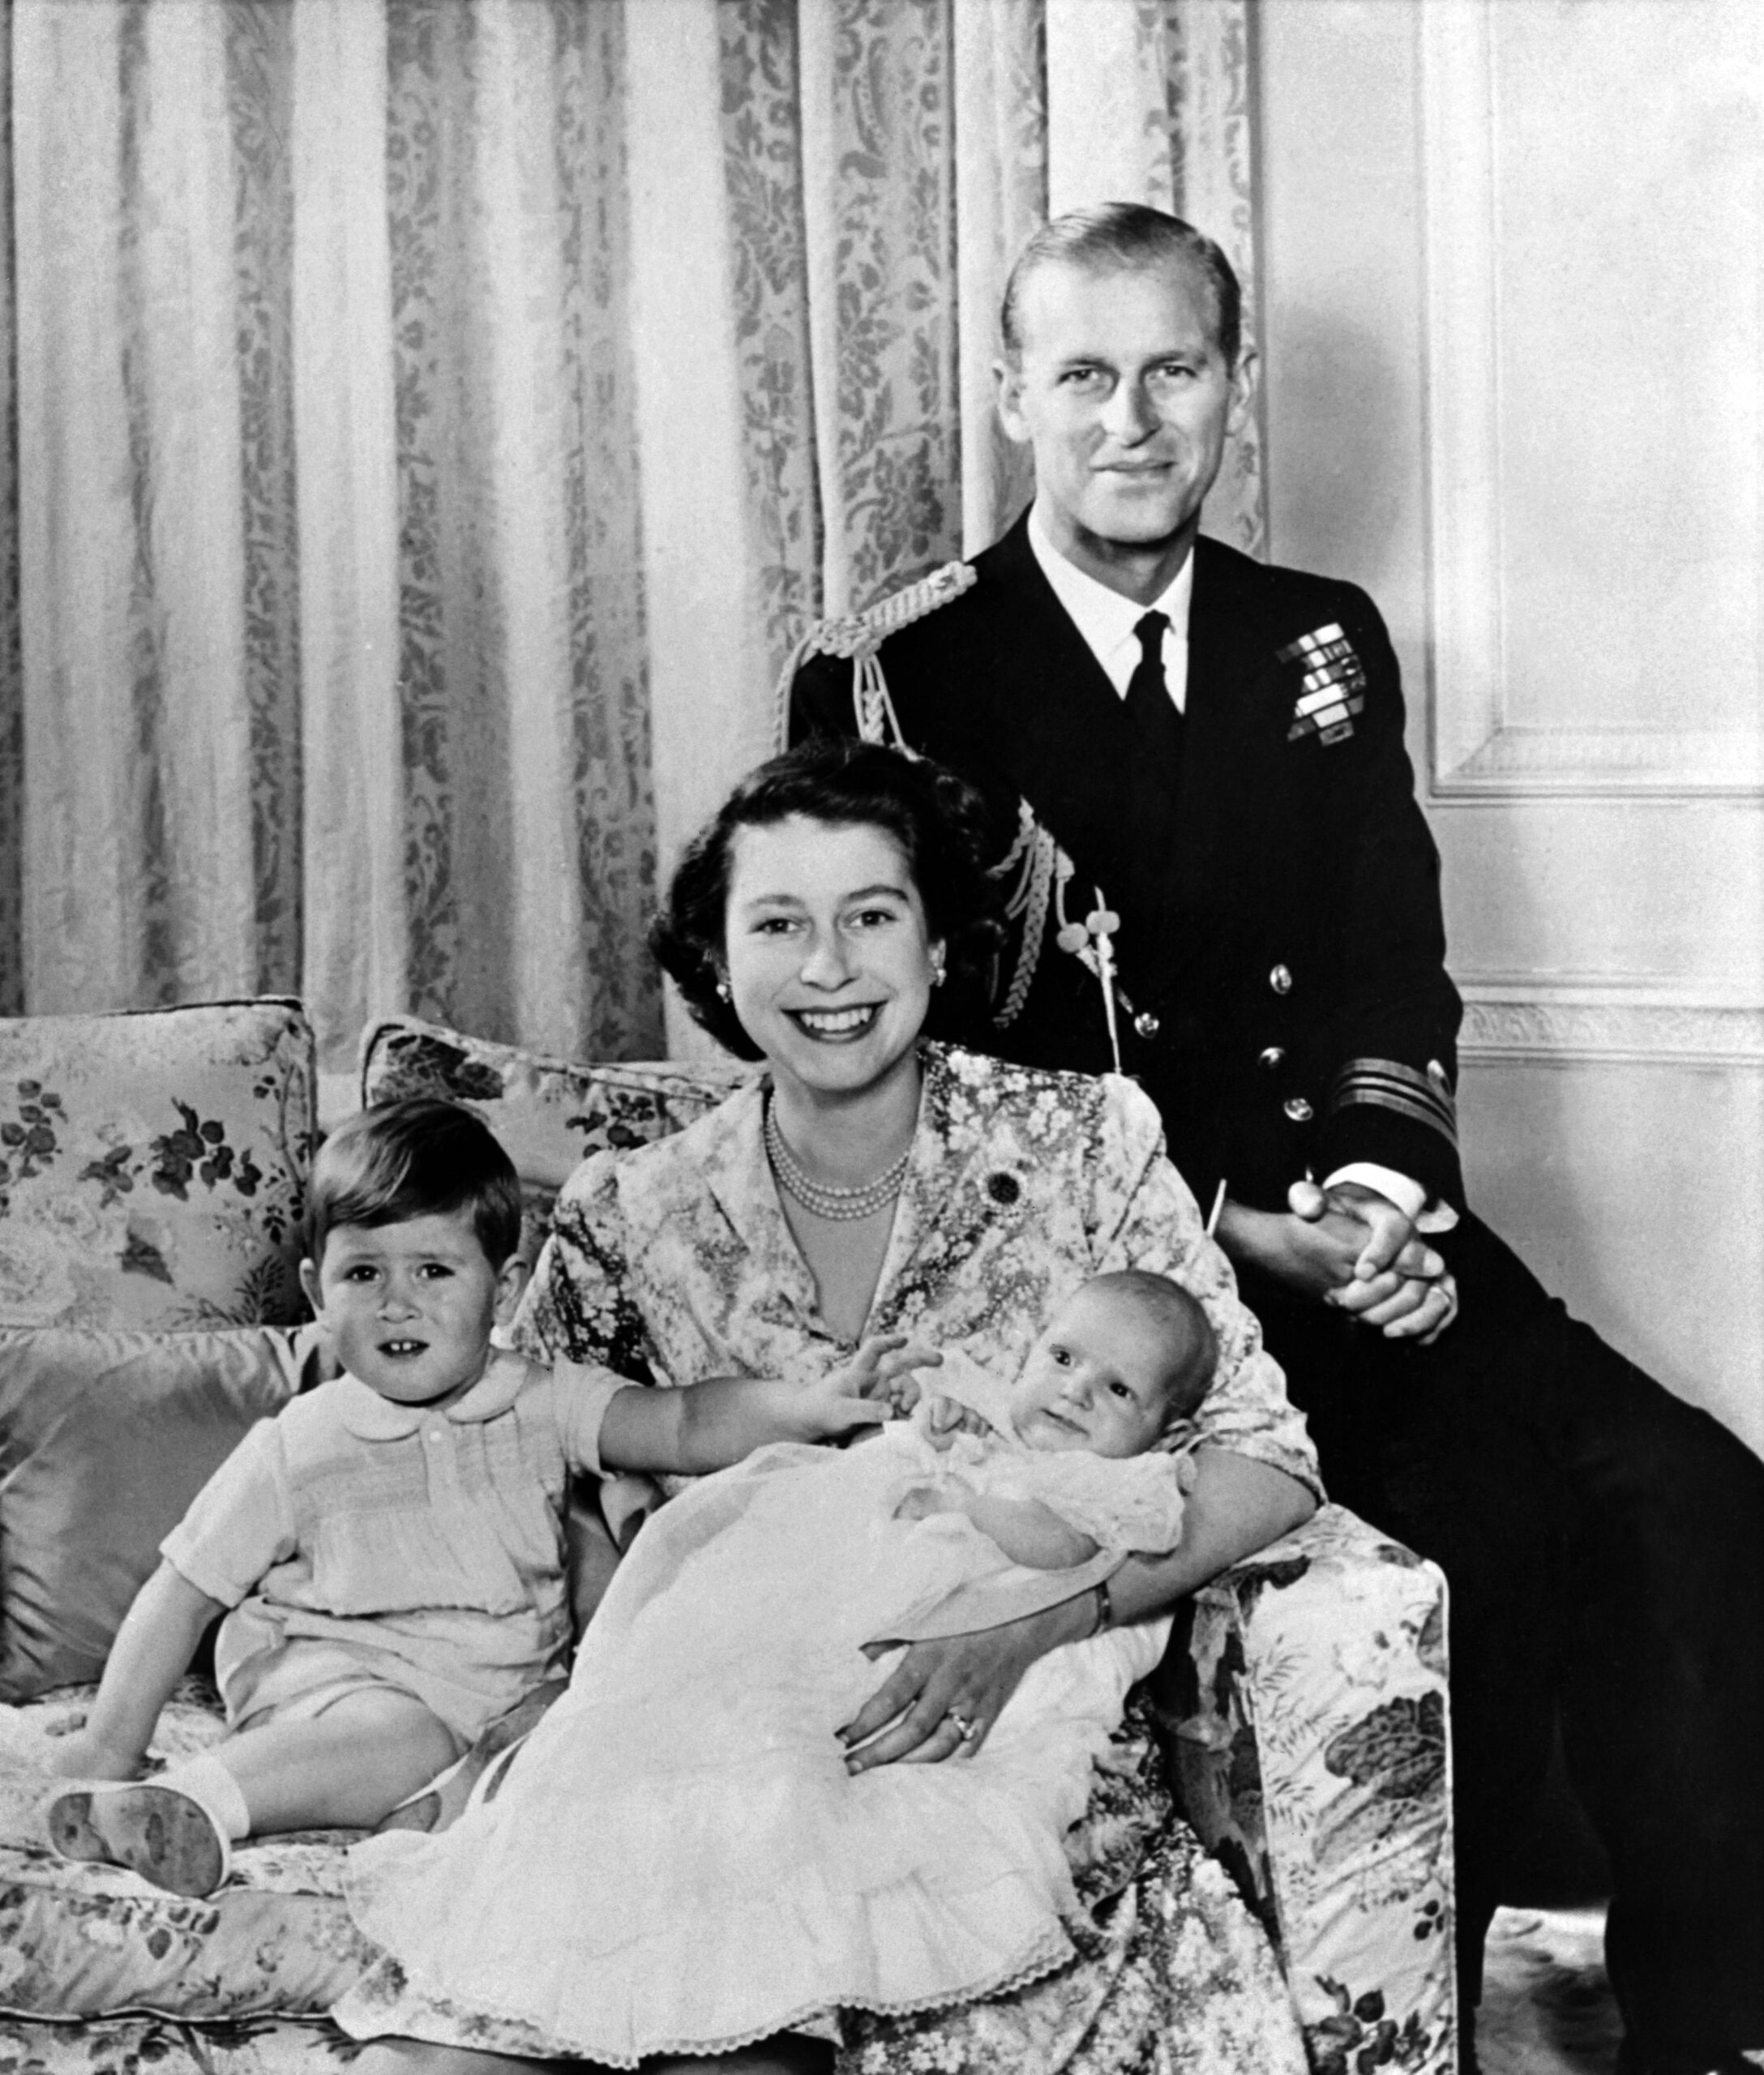 Queen Elizabeth II and Prince Philip and family, 1950